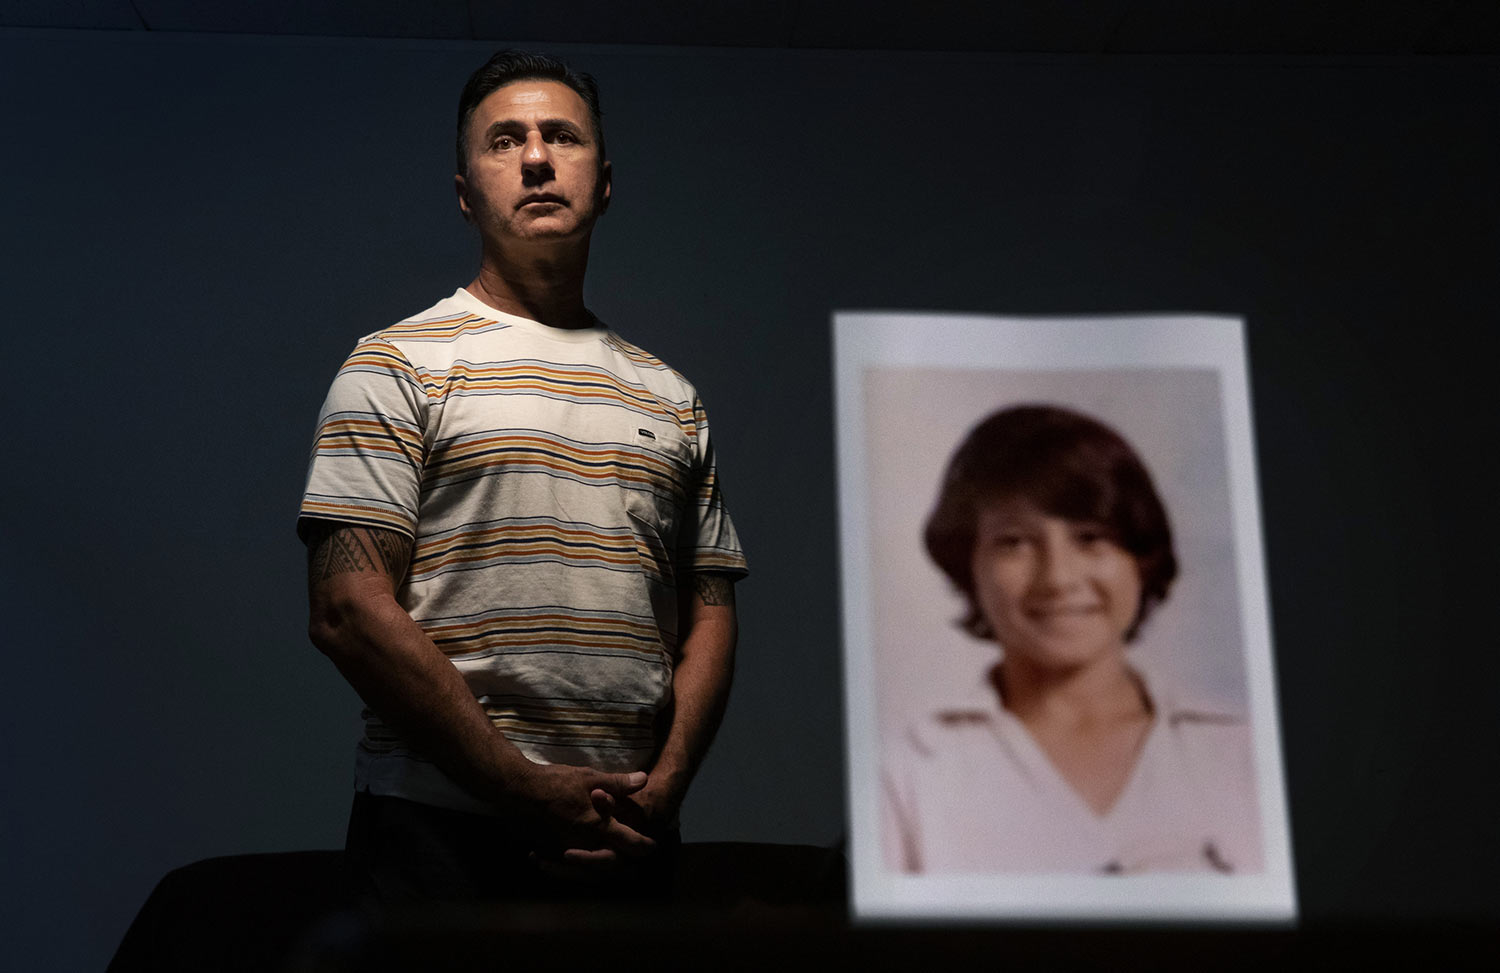 Walter Denton, 55, stands behind a photo of himself when he was about 12 years old. (AP Photo/David Goldman)